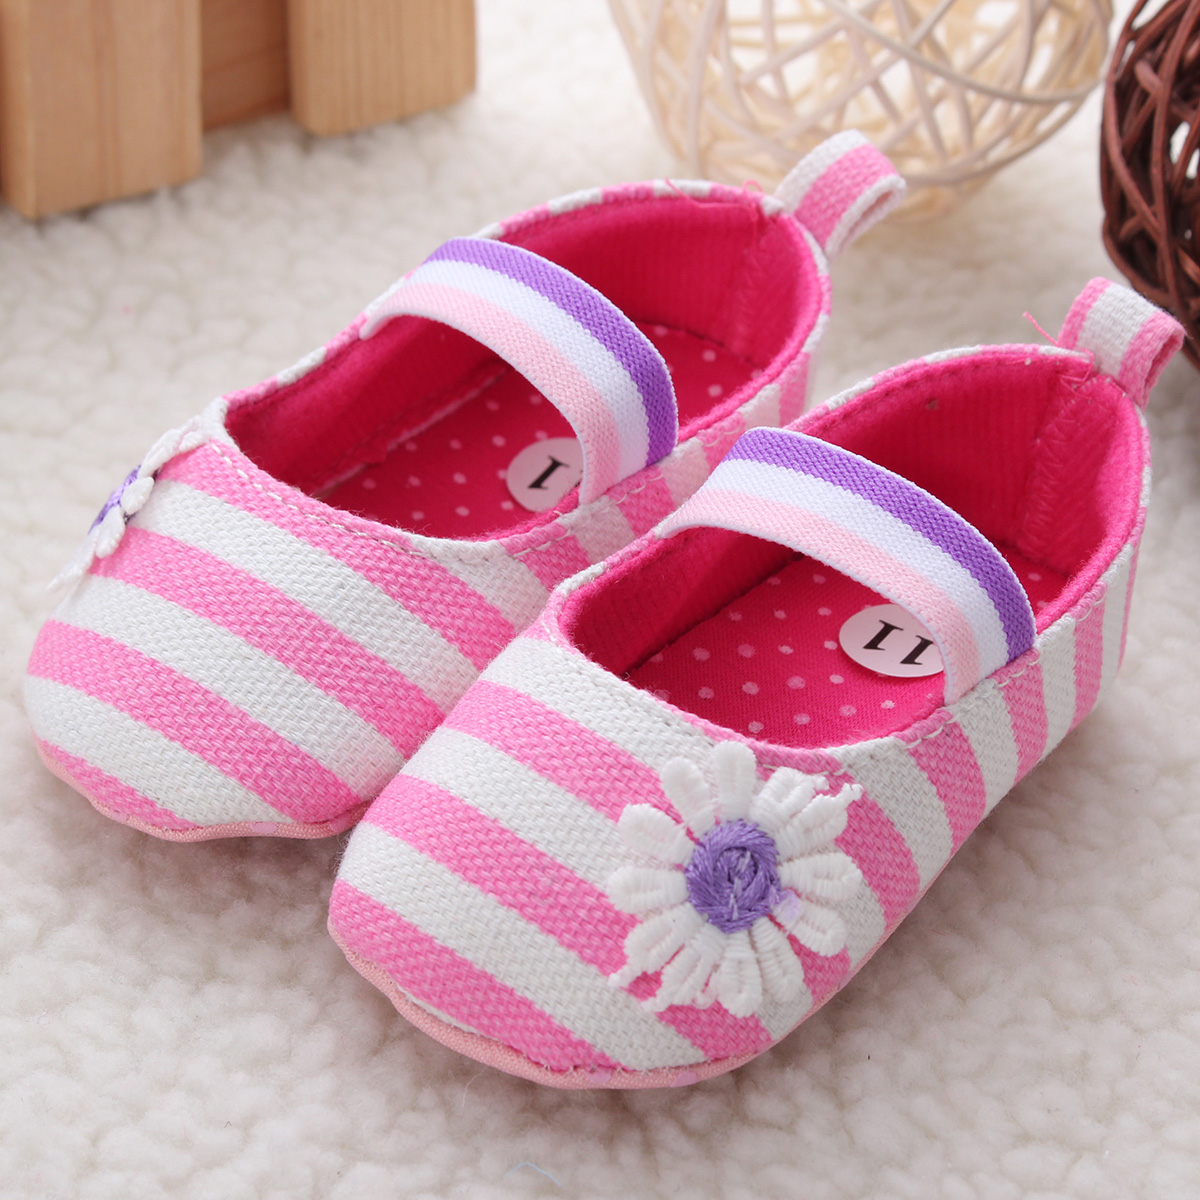 Baby Infant Soft Sole Shoes Canvas Floral Stripe Girl Toddler Princess